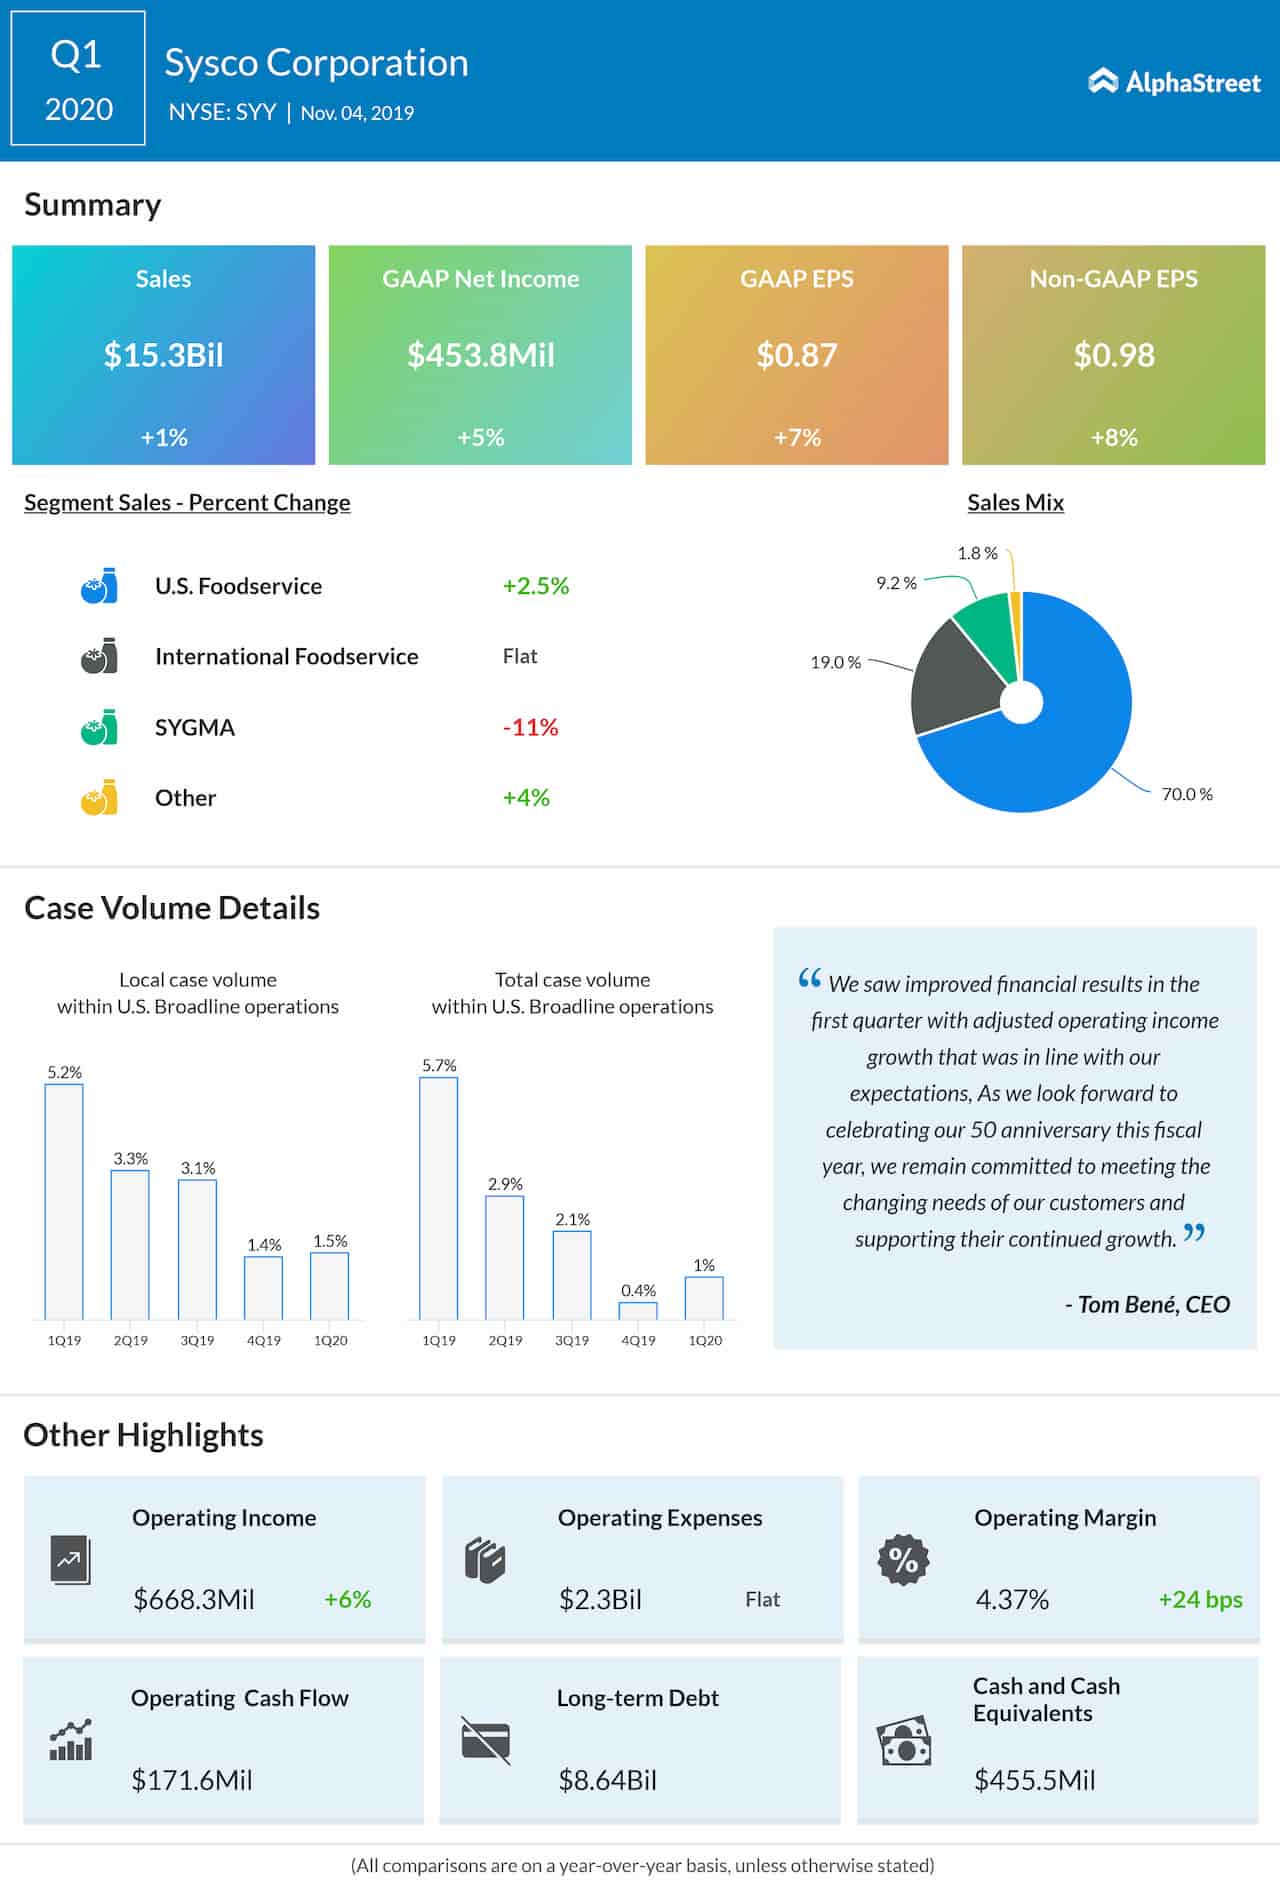 Sysco Corporation Q1 2020 earnings infographic